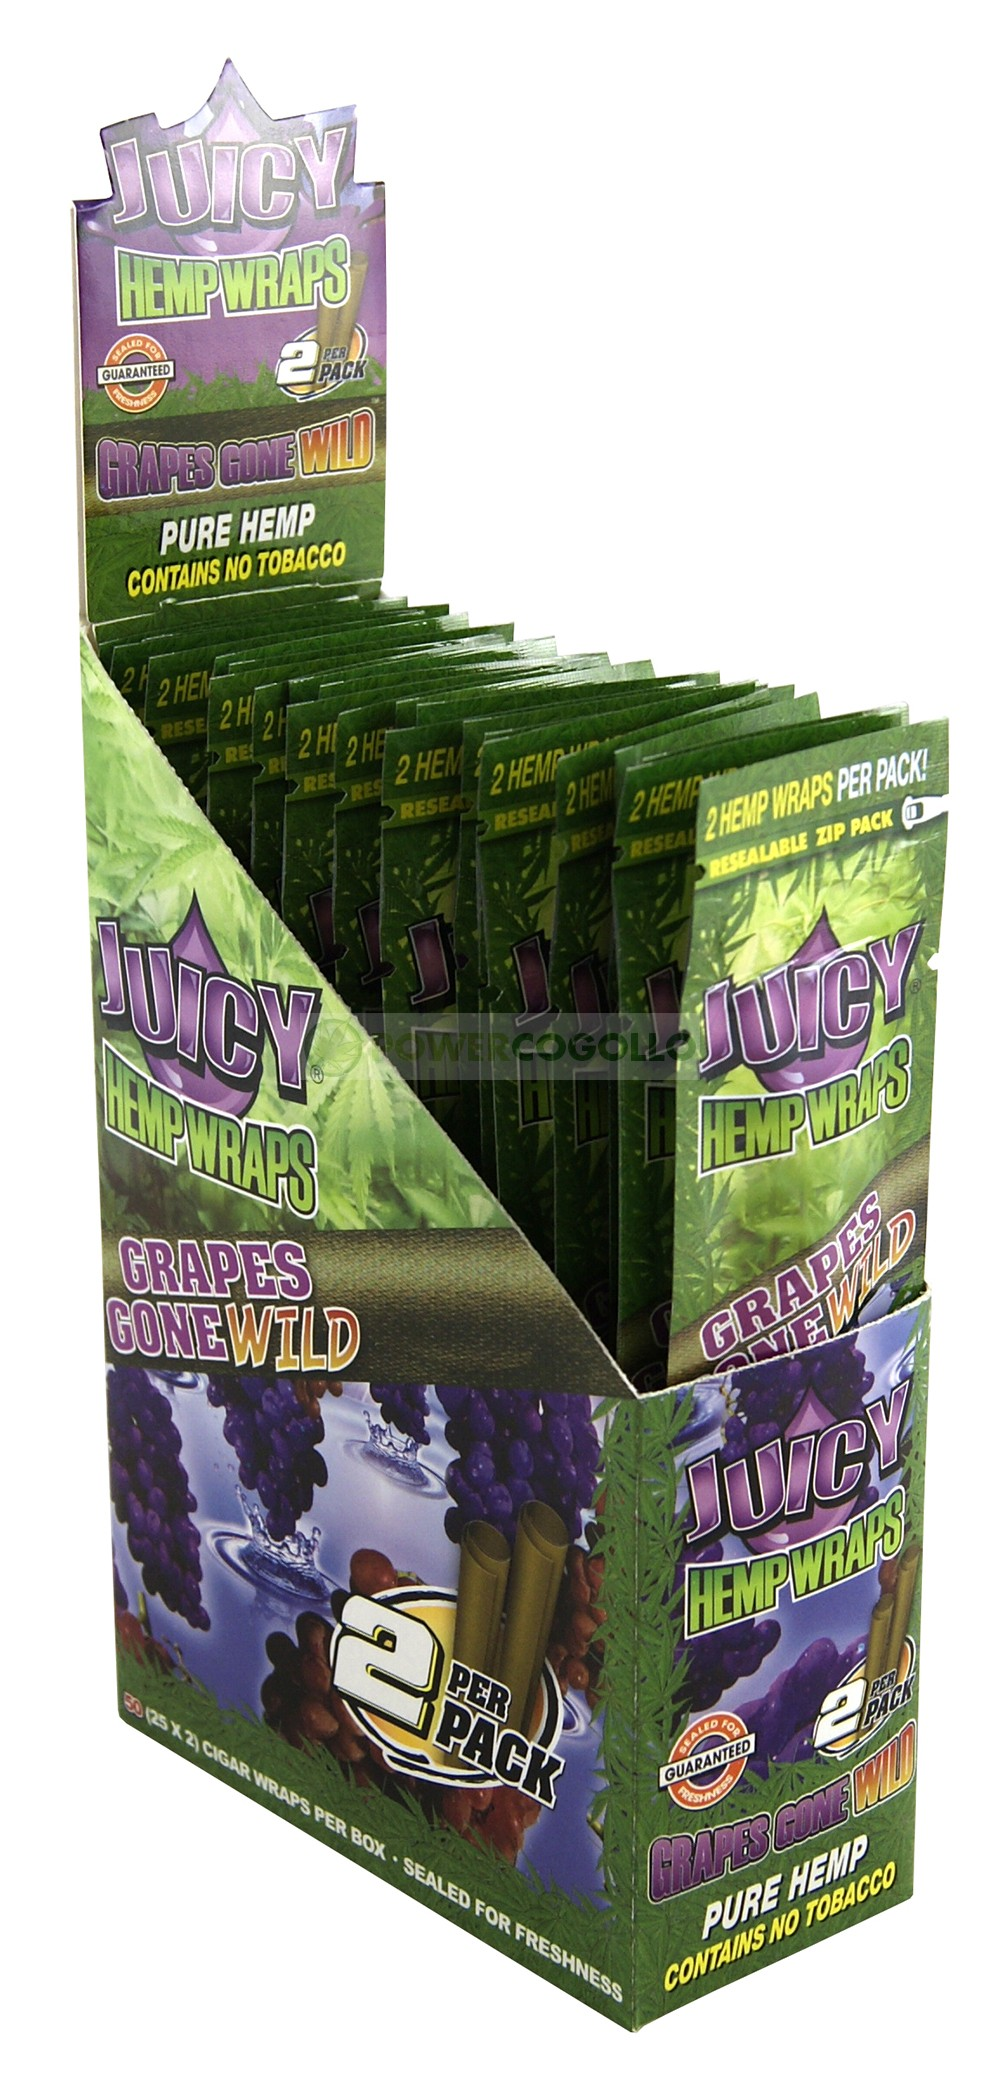 PAPEL DE CAÑAMO HEMP WRAPS JUICY BLUNT UVA 1